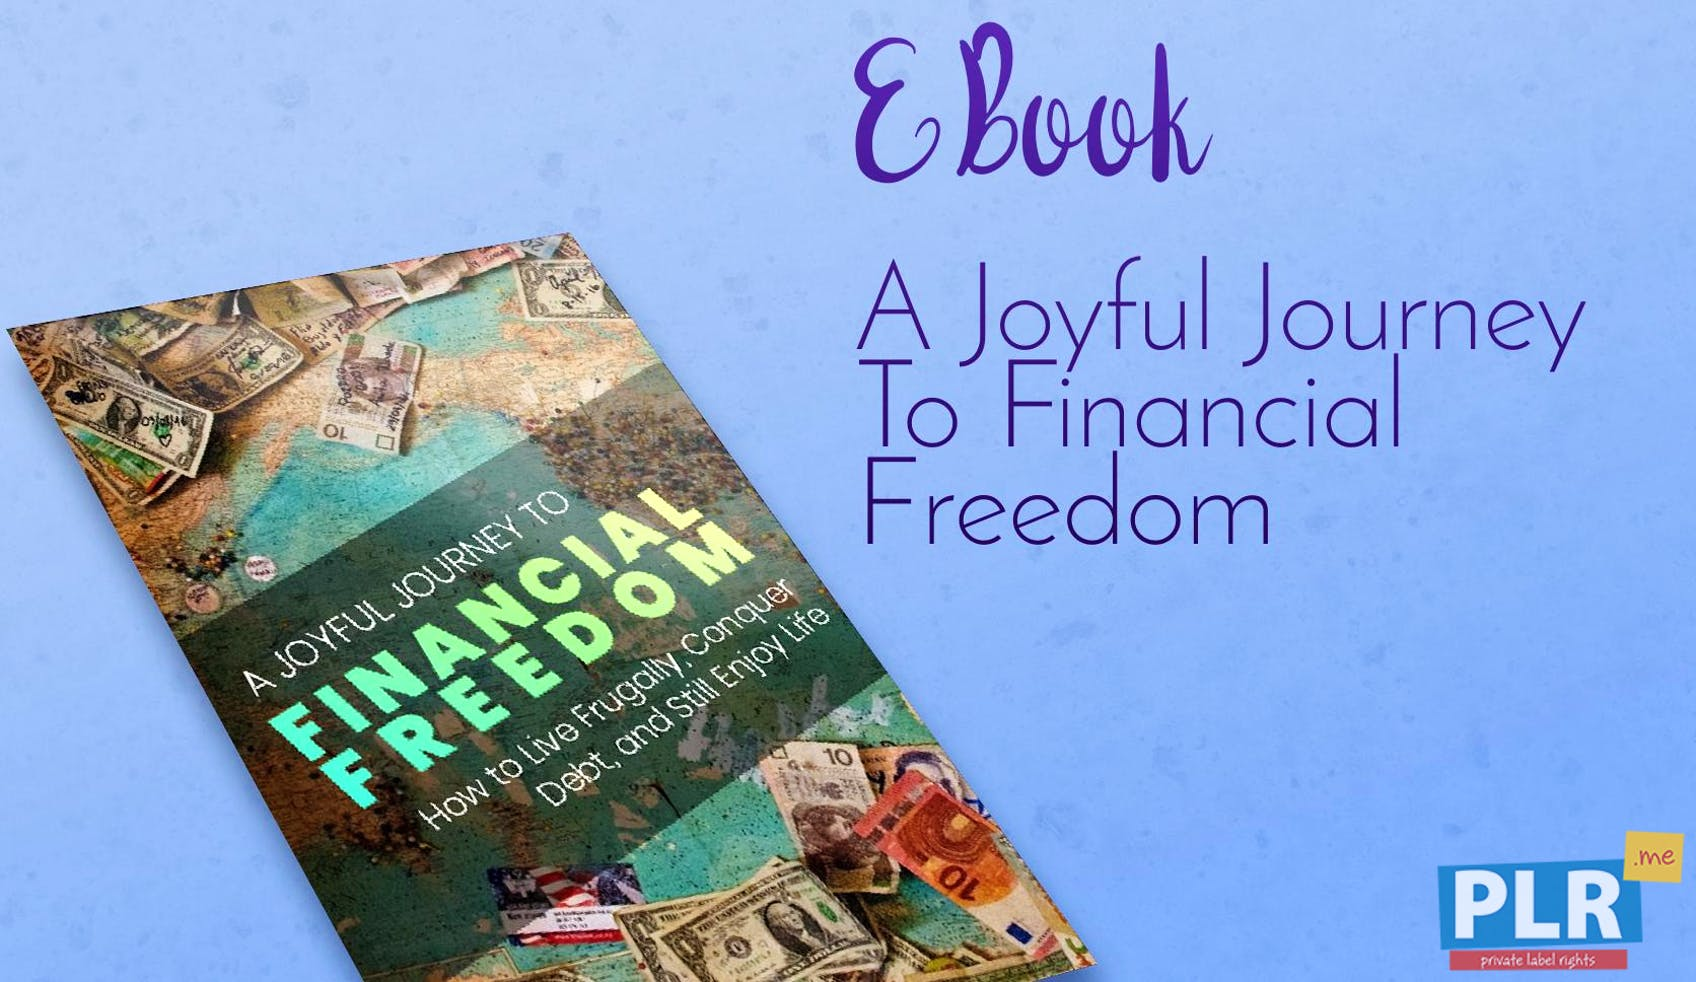 A Joyful Journey To Financial Freedom